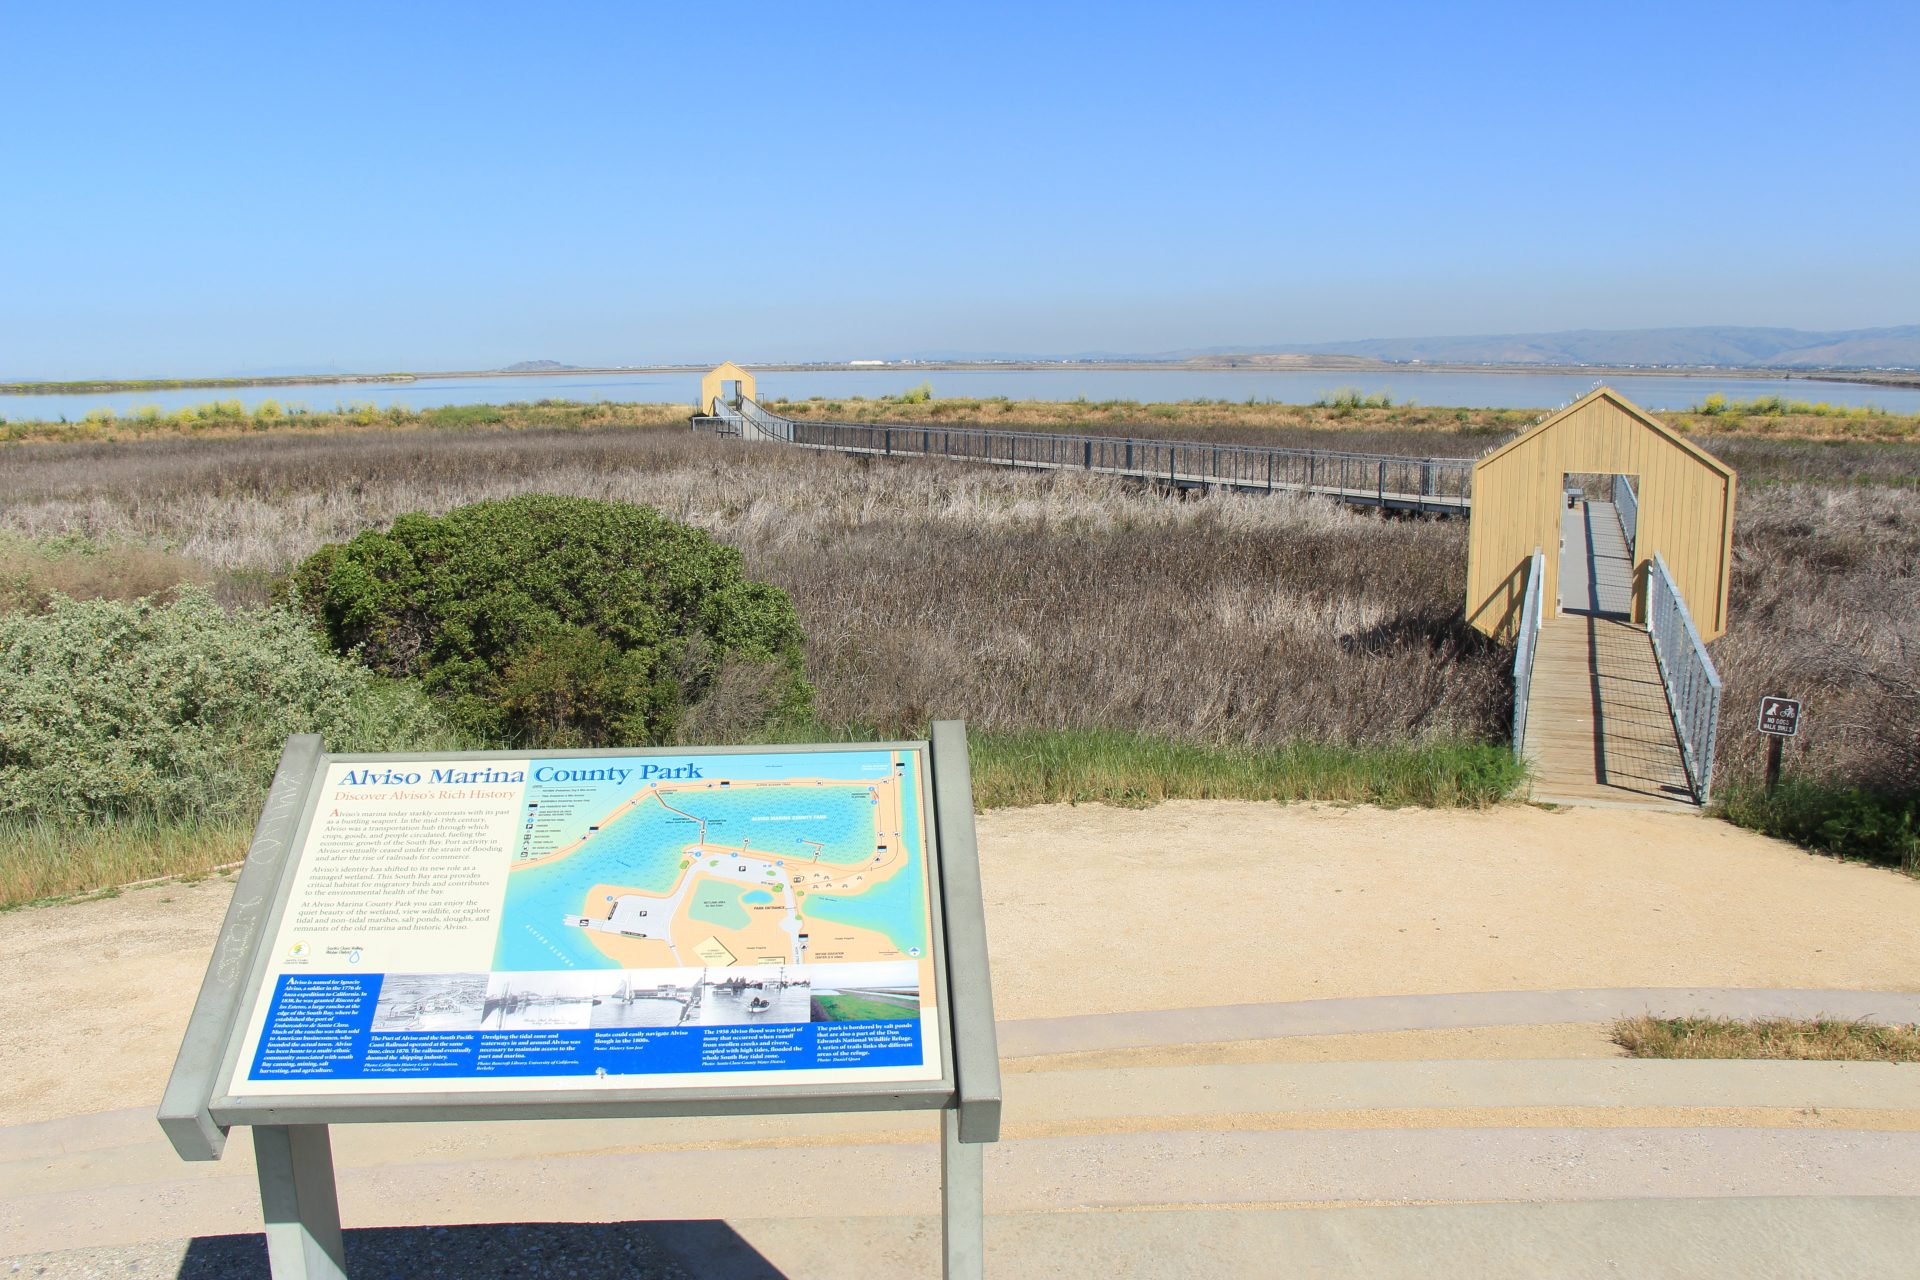 Gravel path to boardwalk extending far over marsh. Sign in foreground says,